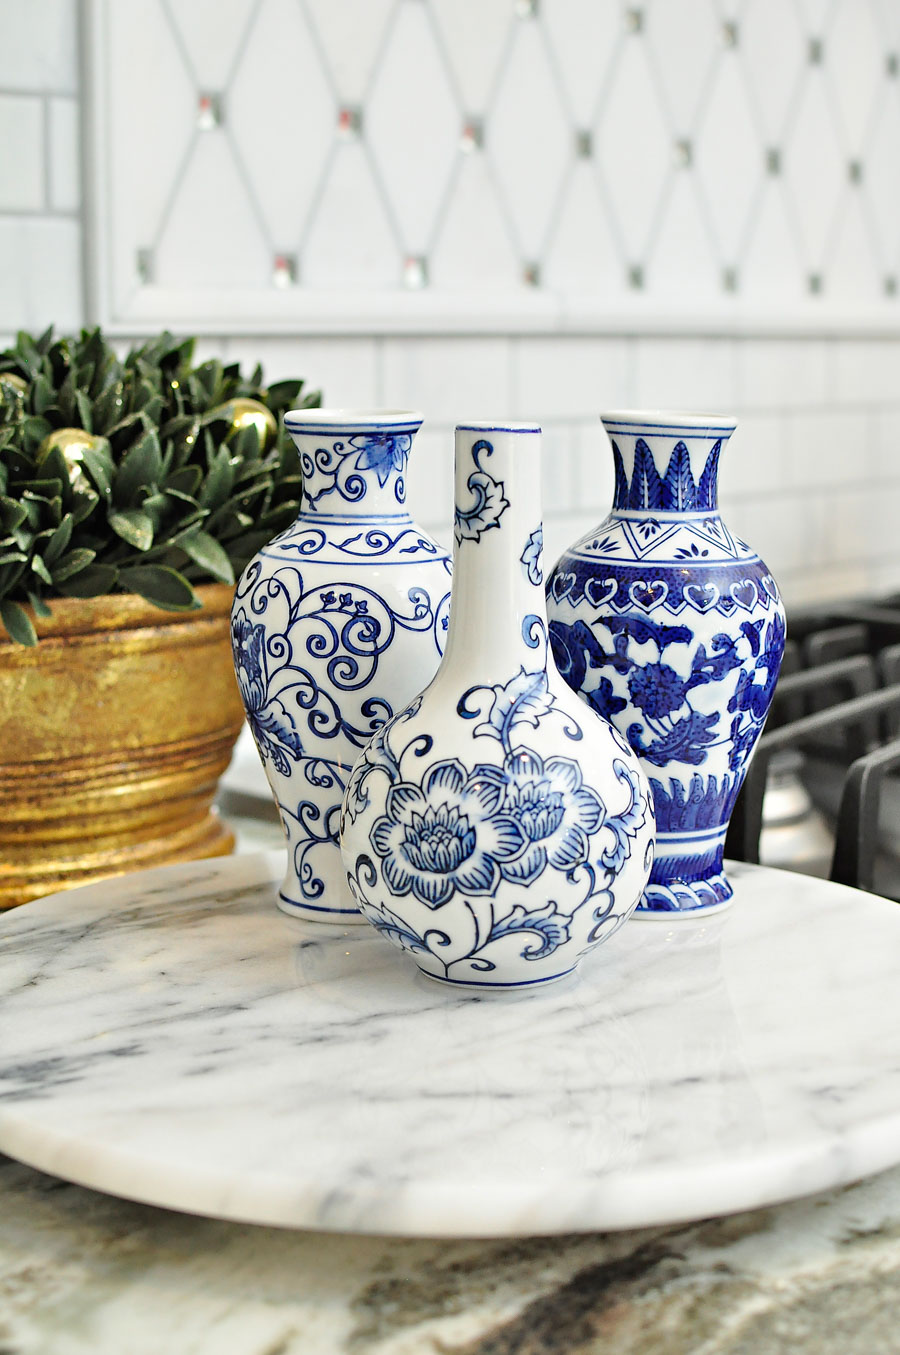 Mini blue and white ginger jar vases on a marble lazy susan in an all white kitchen.